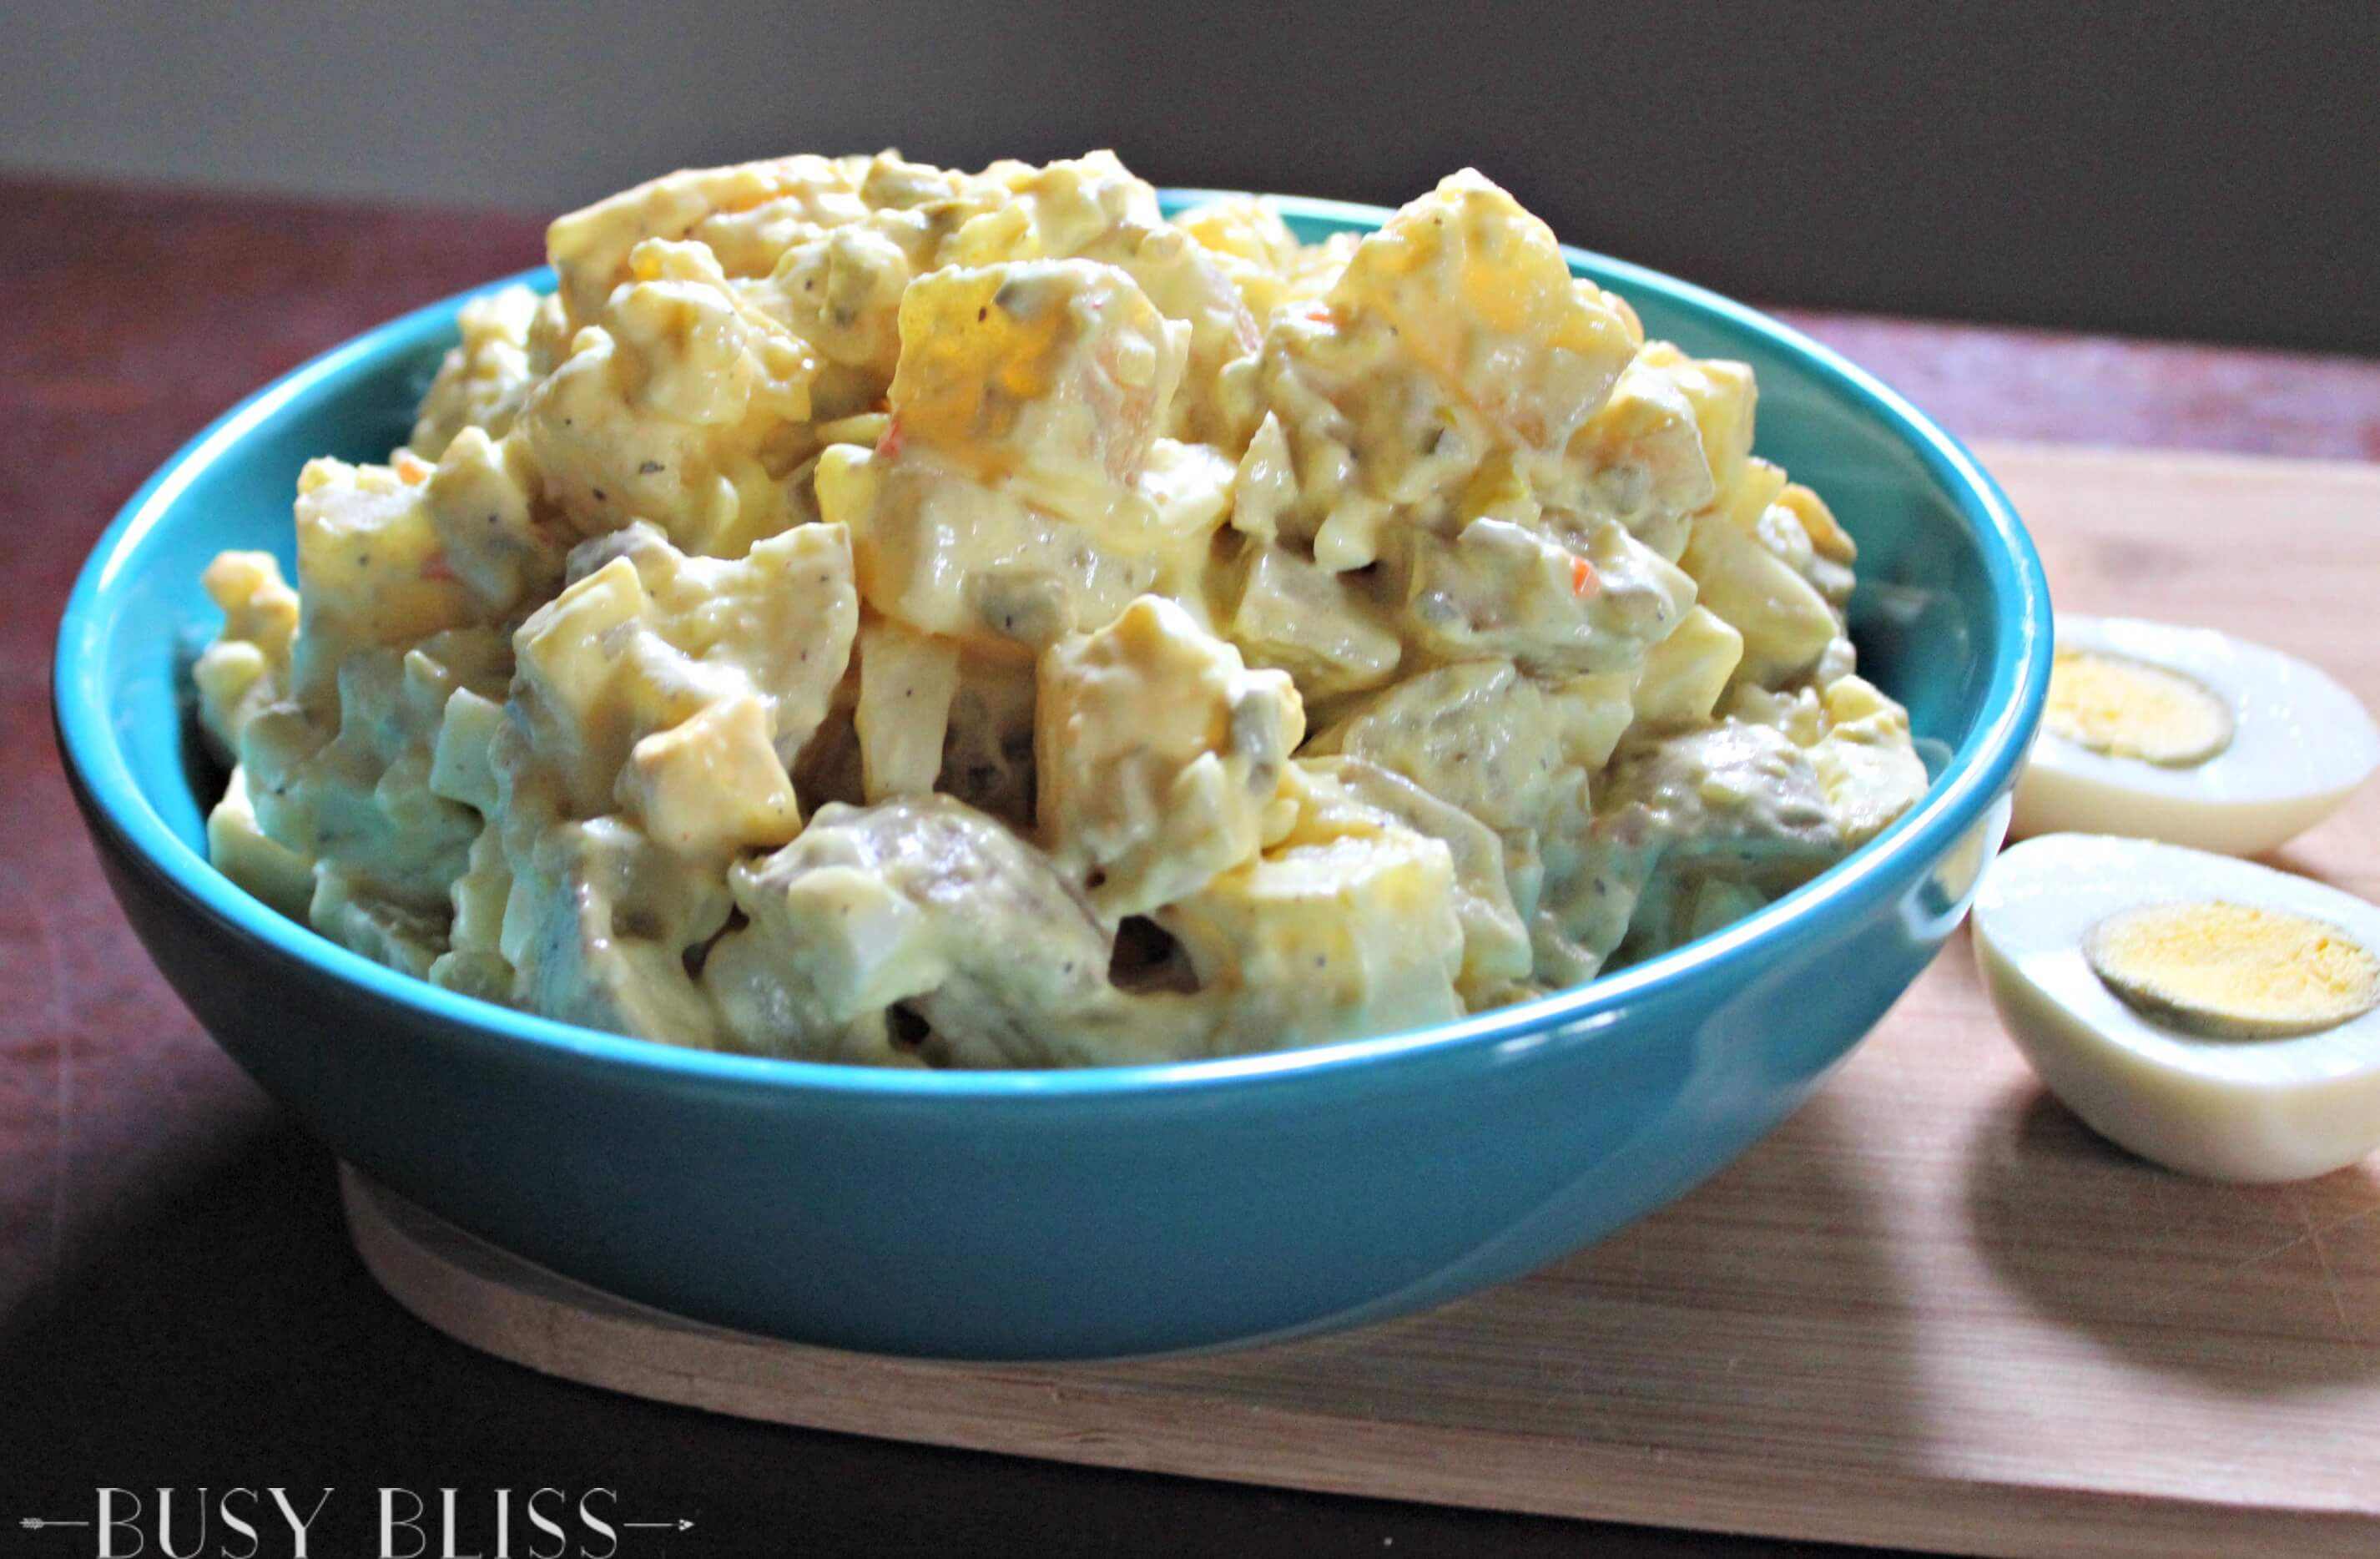 This is the absolute best potato salad recipe! Cook the potatoes in the pressure cooker for an easy side dish sure to please at your next barbecue.